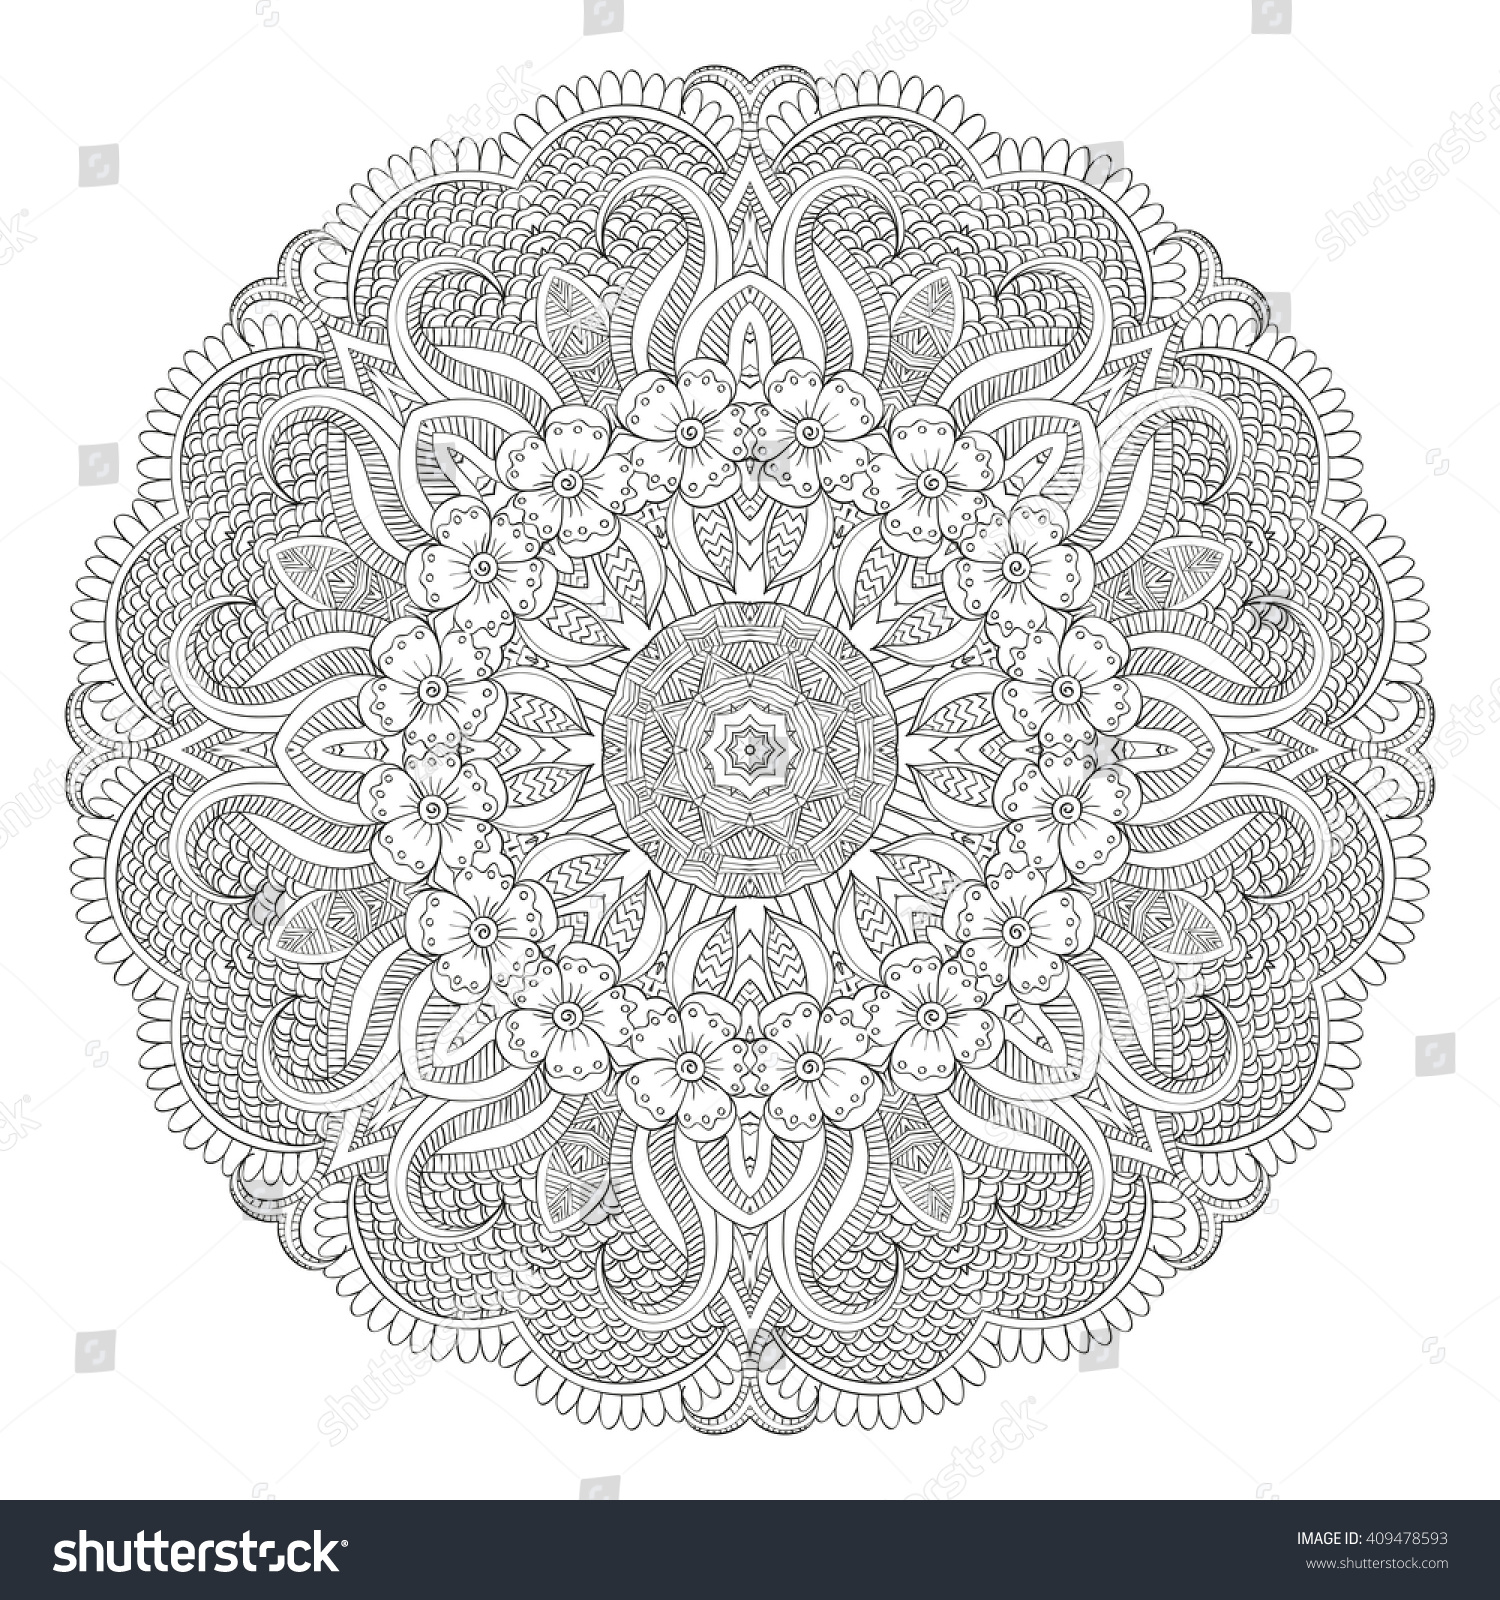 Flower Mandala Abstract Vector Ornaments Ethnic Stock Vector 409478593